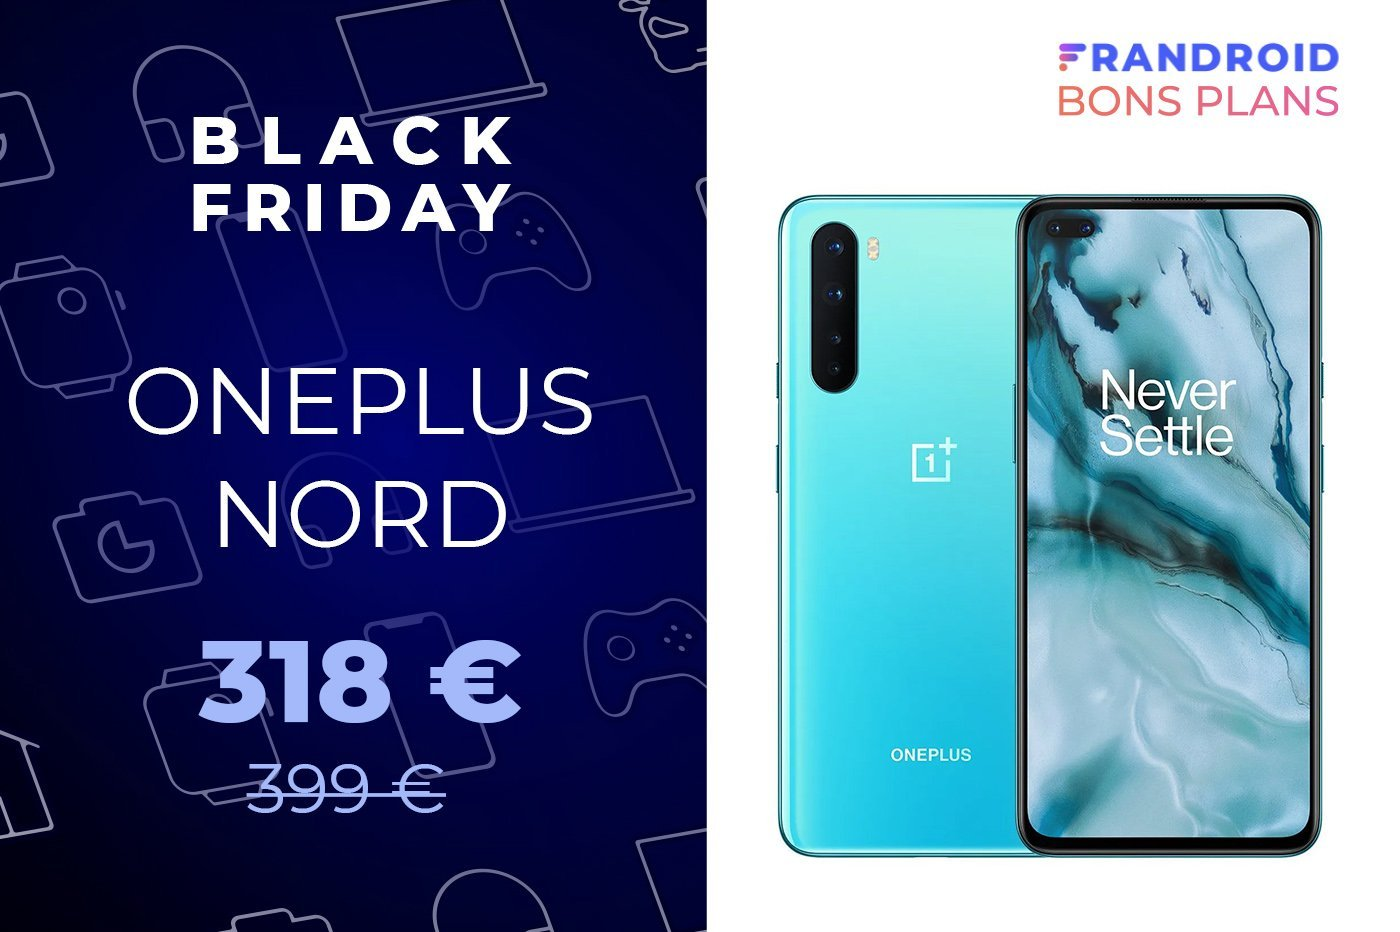 L'excellent OnePlus Nord passe de 399 à 318 € pour le Black Friday